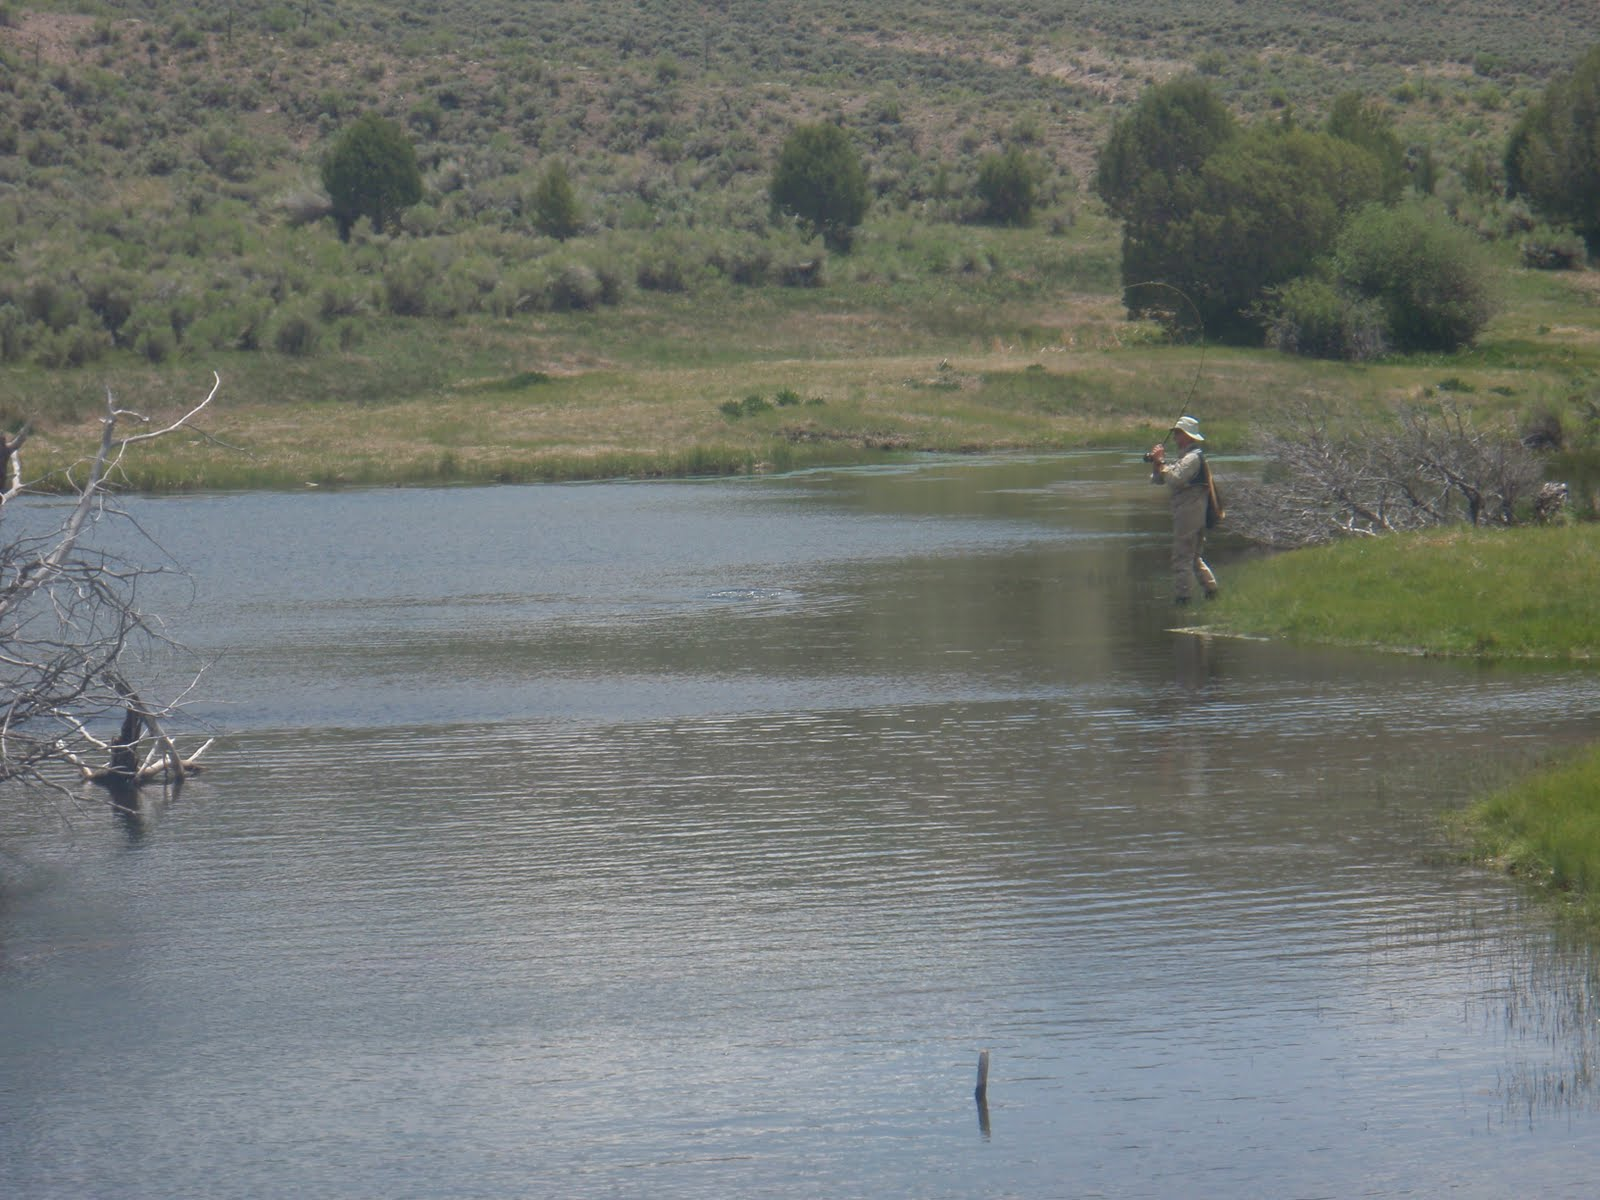 Southern utah fly fishing quiet fly fisher guide service for Trout fishing utah